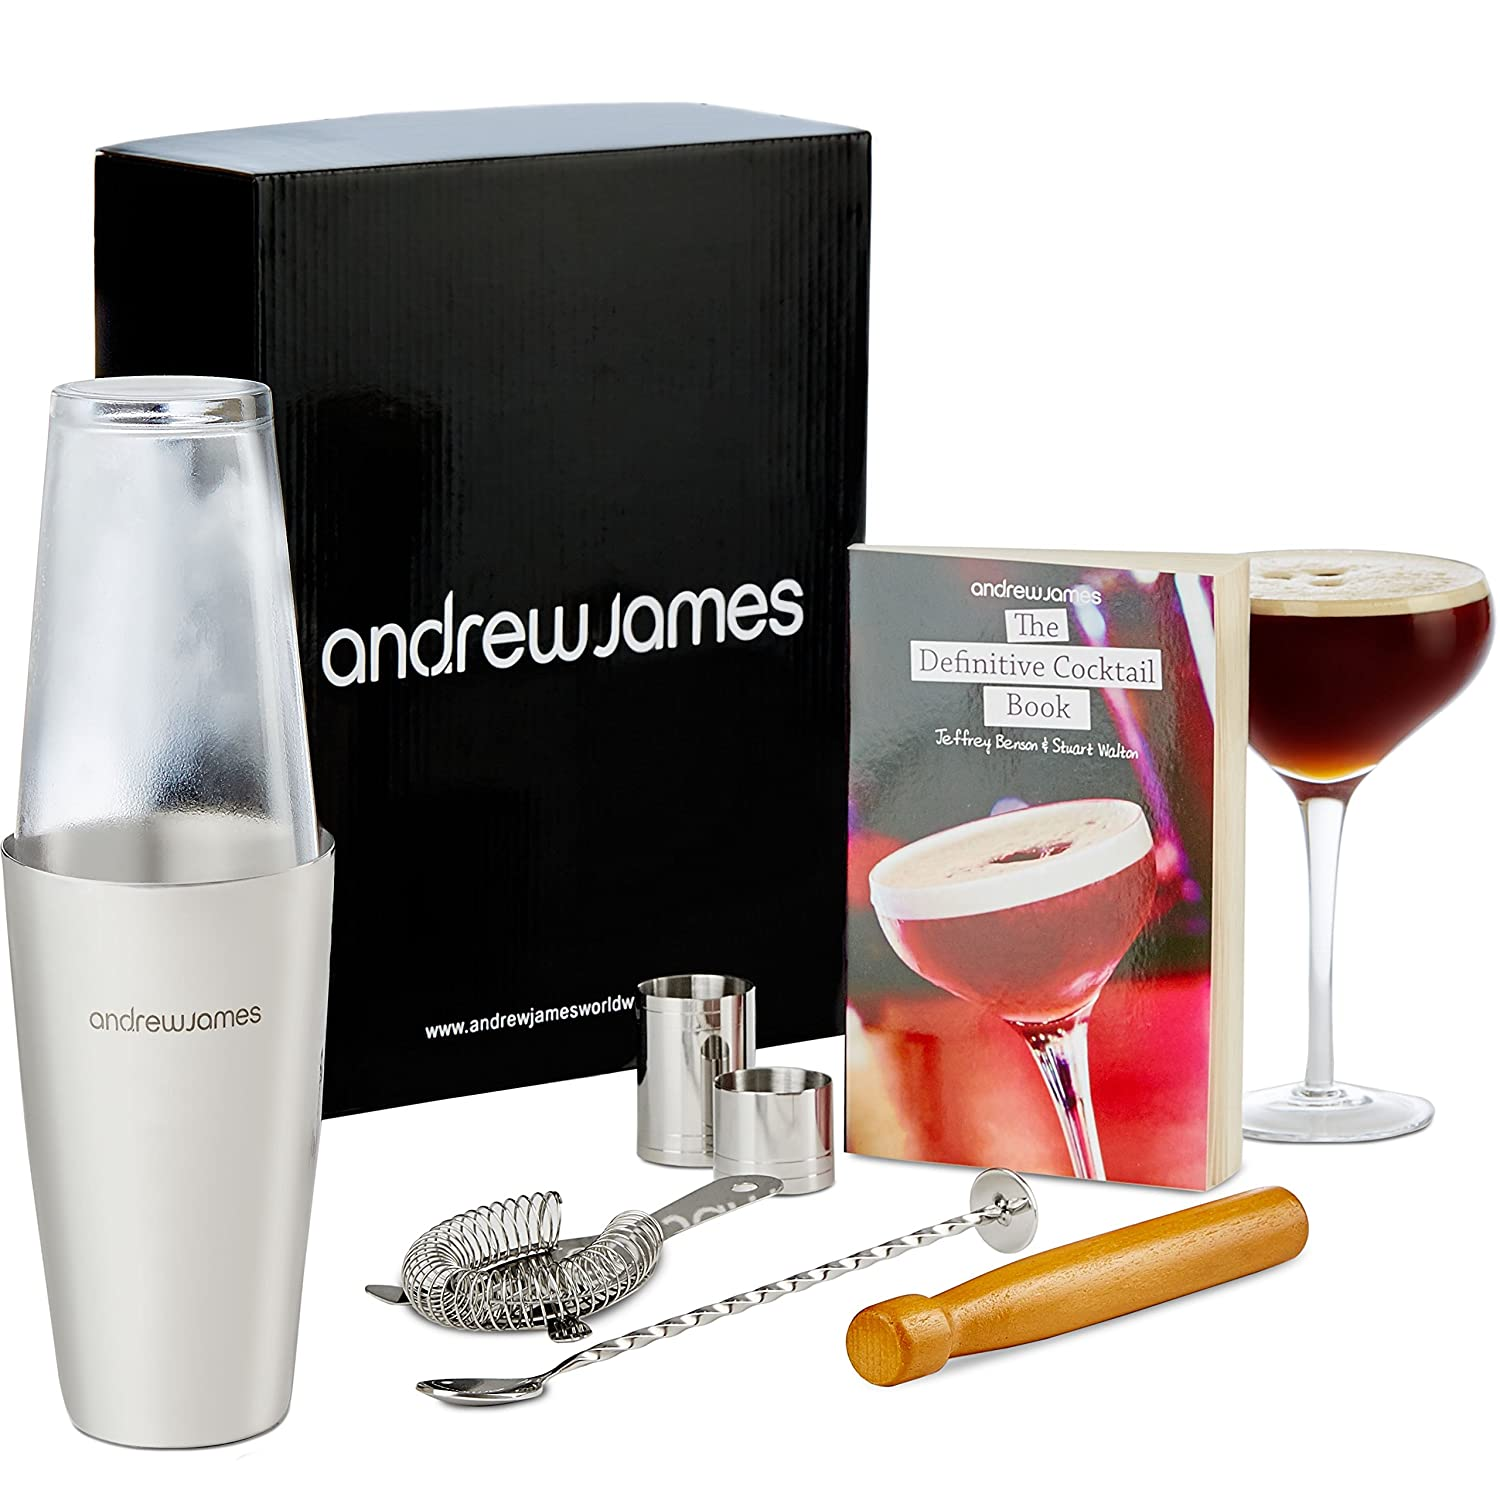 andrew james premium cocktail set including boston cocktail shaker  - andrew james premium cocktail set including boston cocktail shaker andglass twisted bar spoon strainer wooden muddler ml and ml  page cocktail